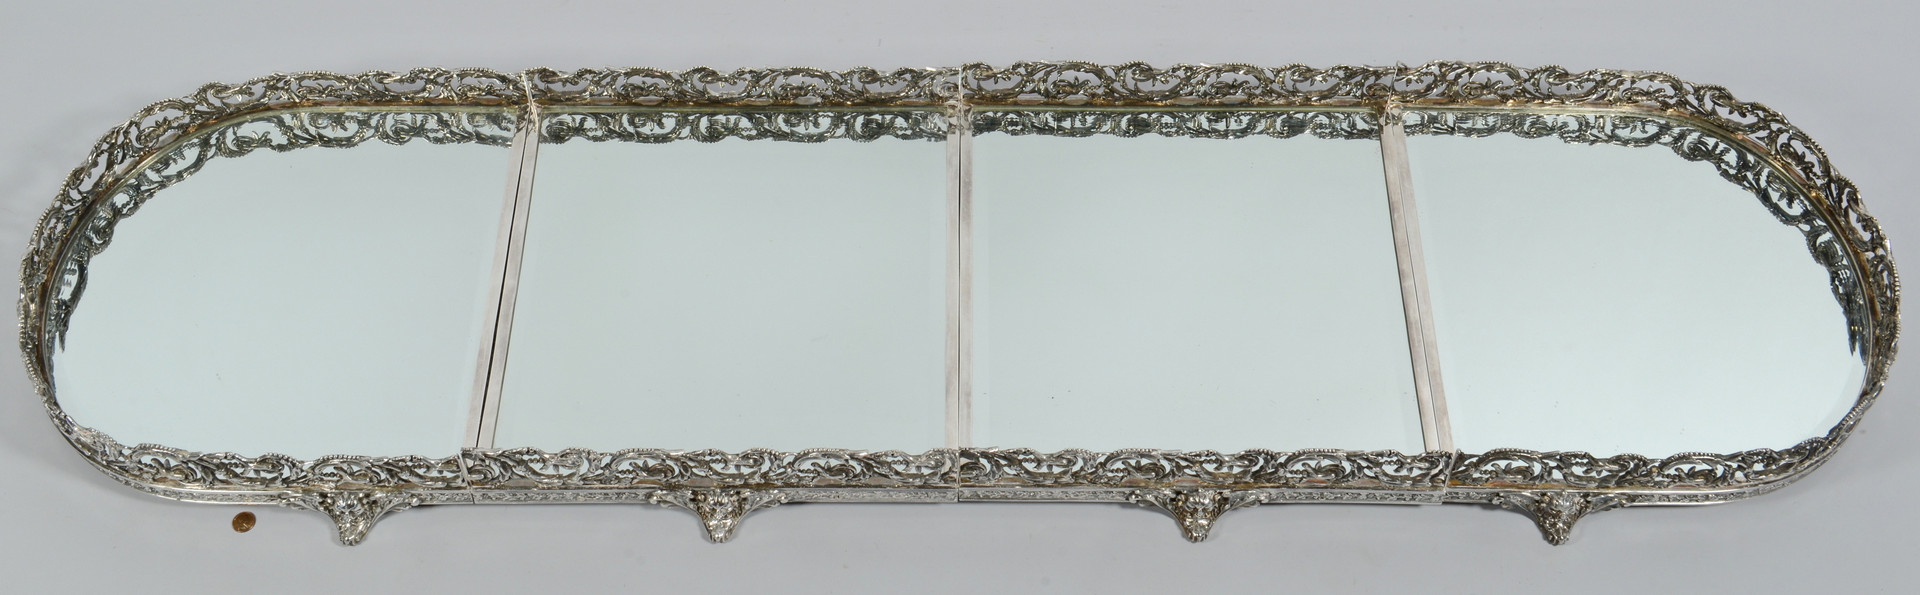 Lot 284: 4-piece Silverplated Plateau